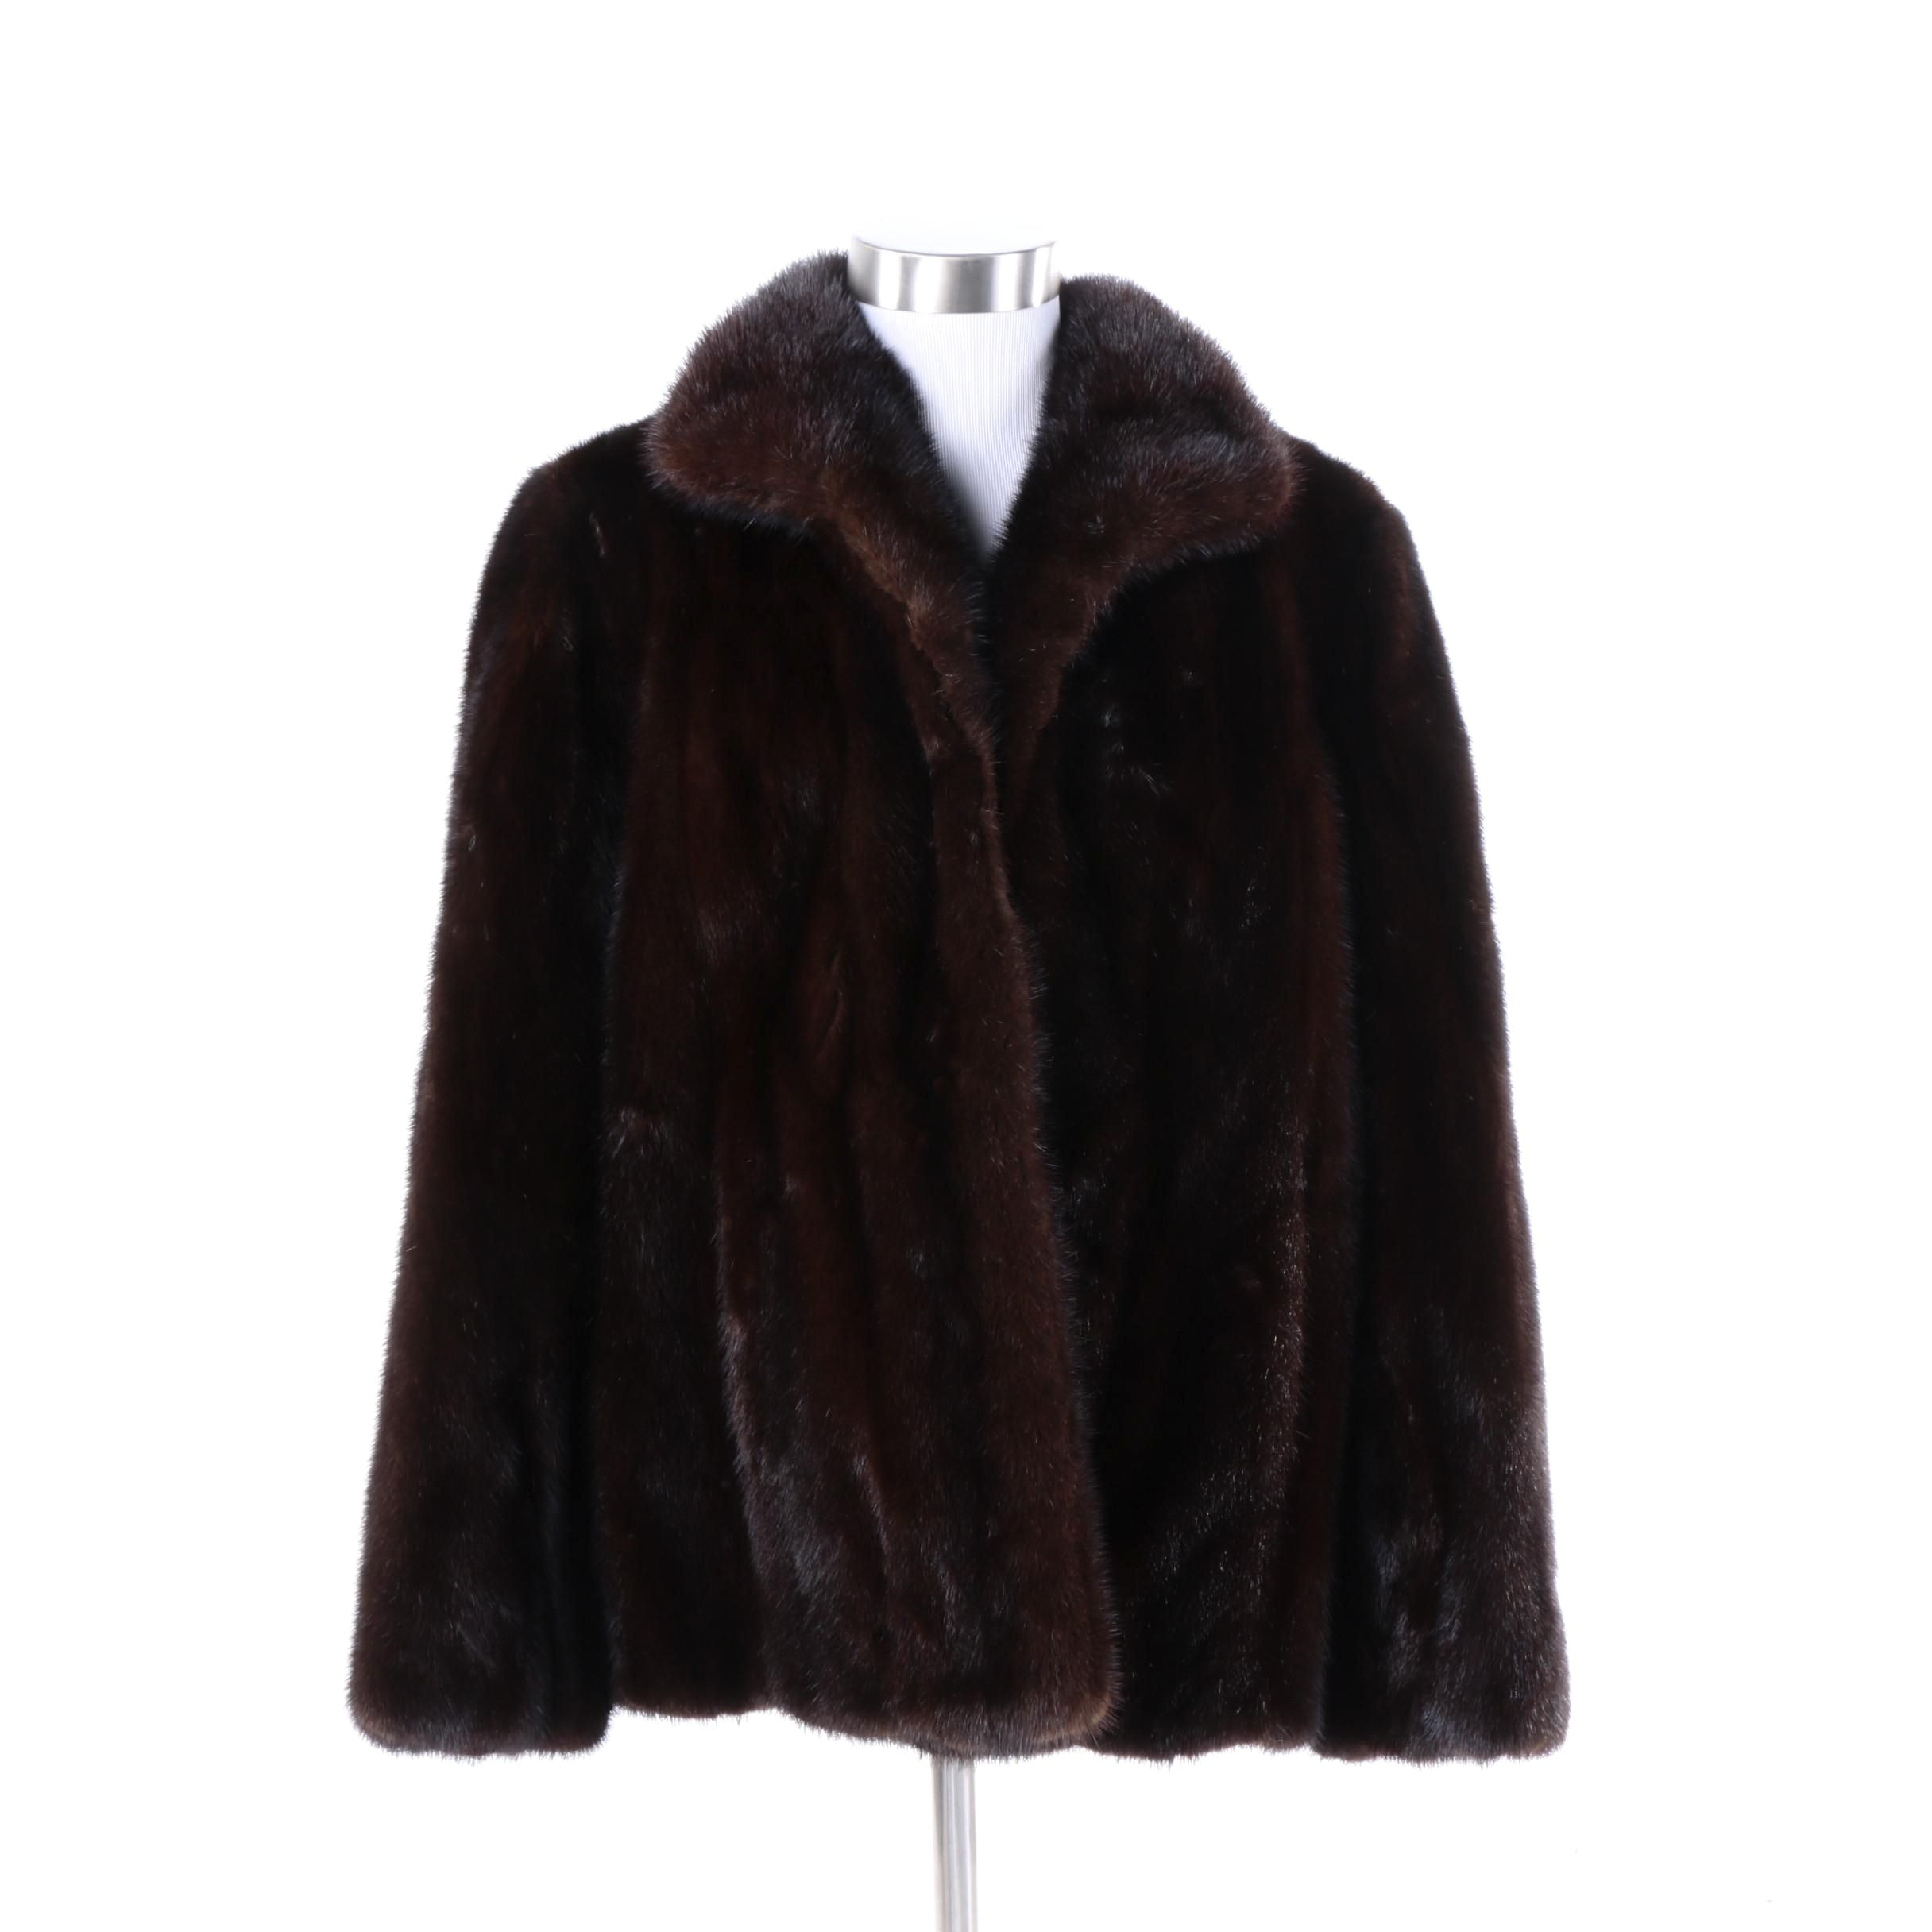 Vintage Bond Furs Mink Fur Jacket